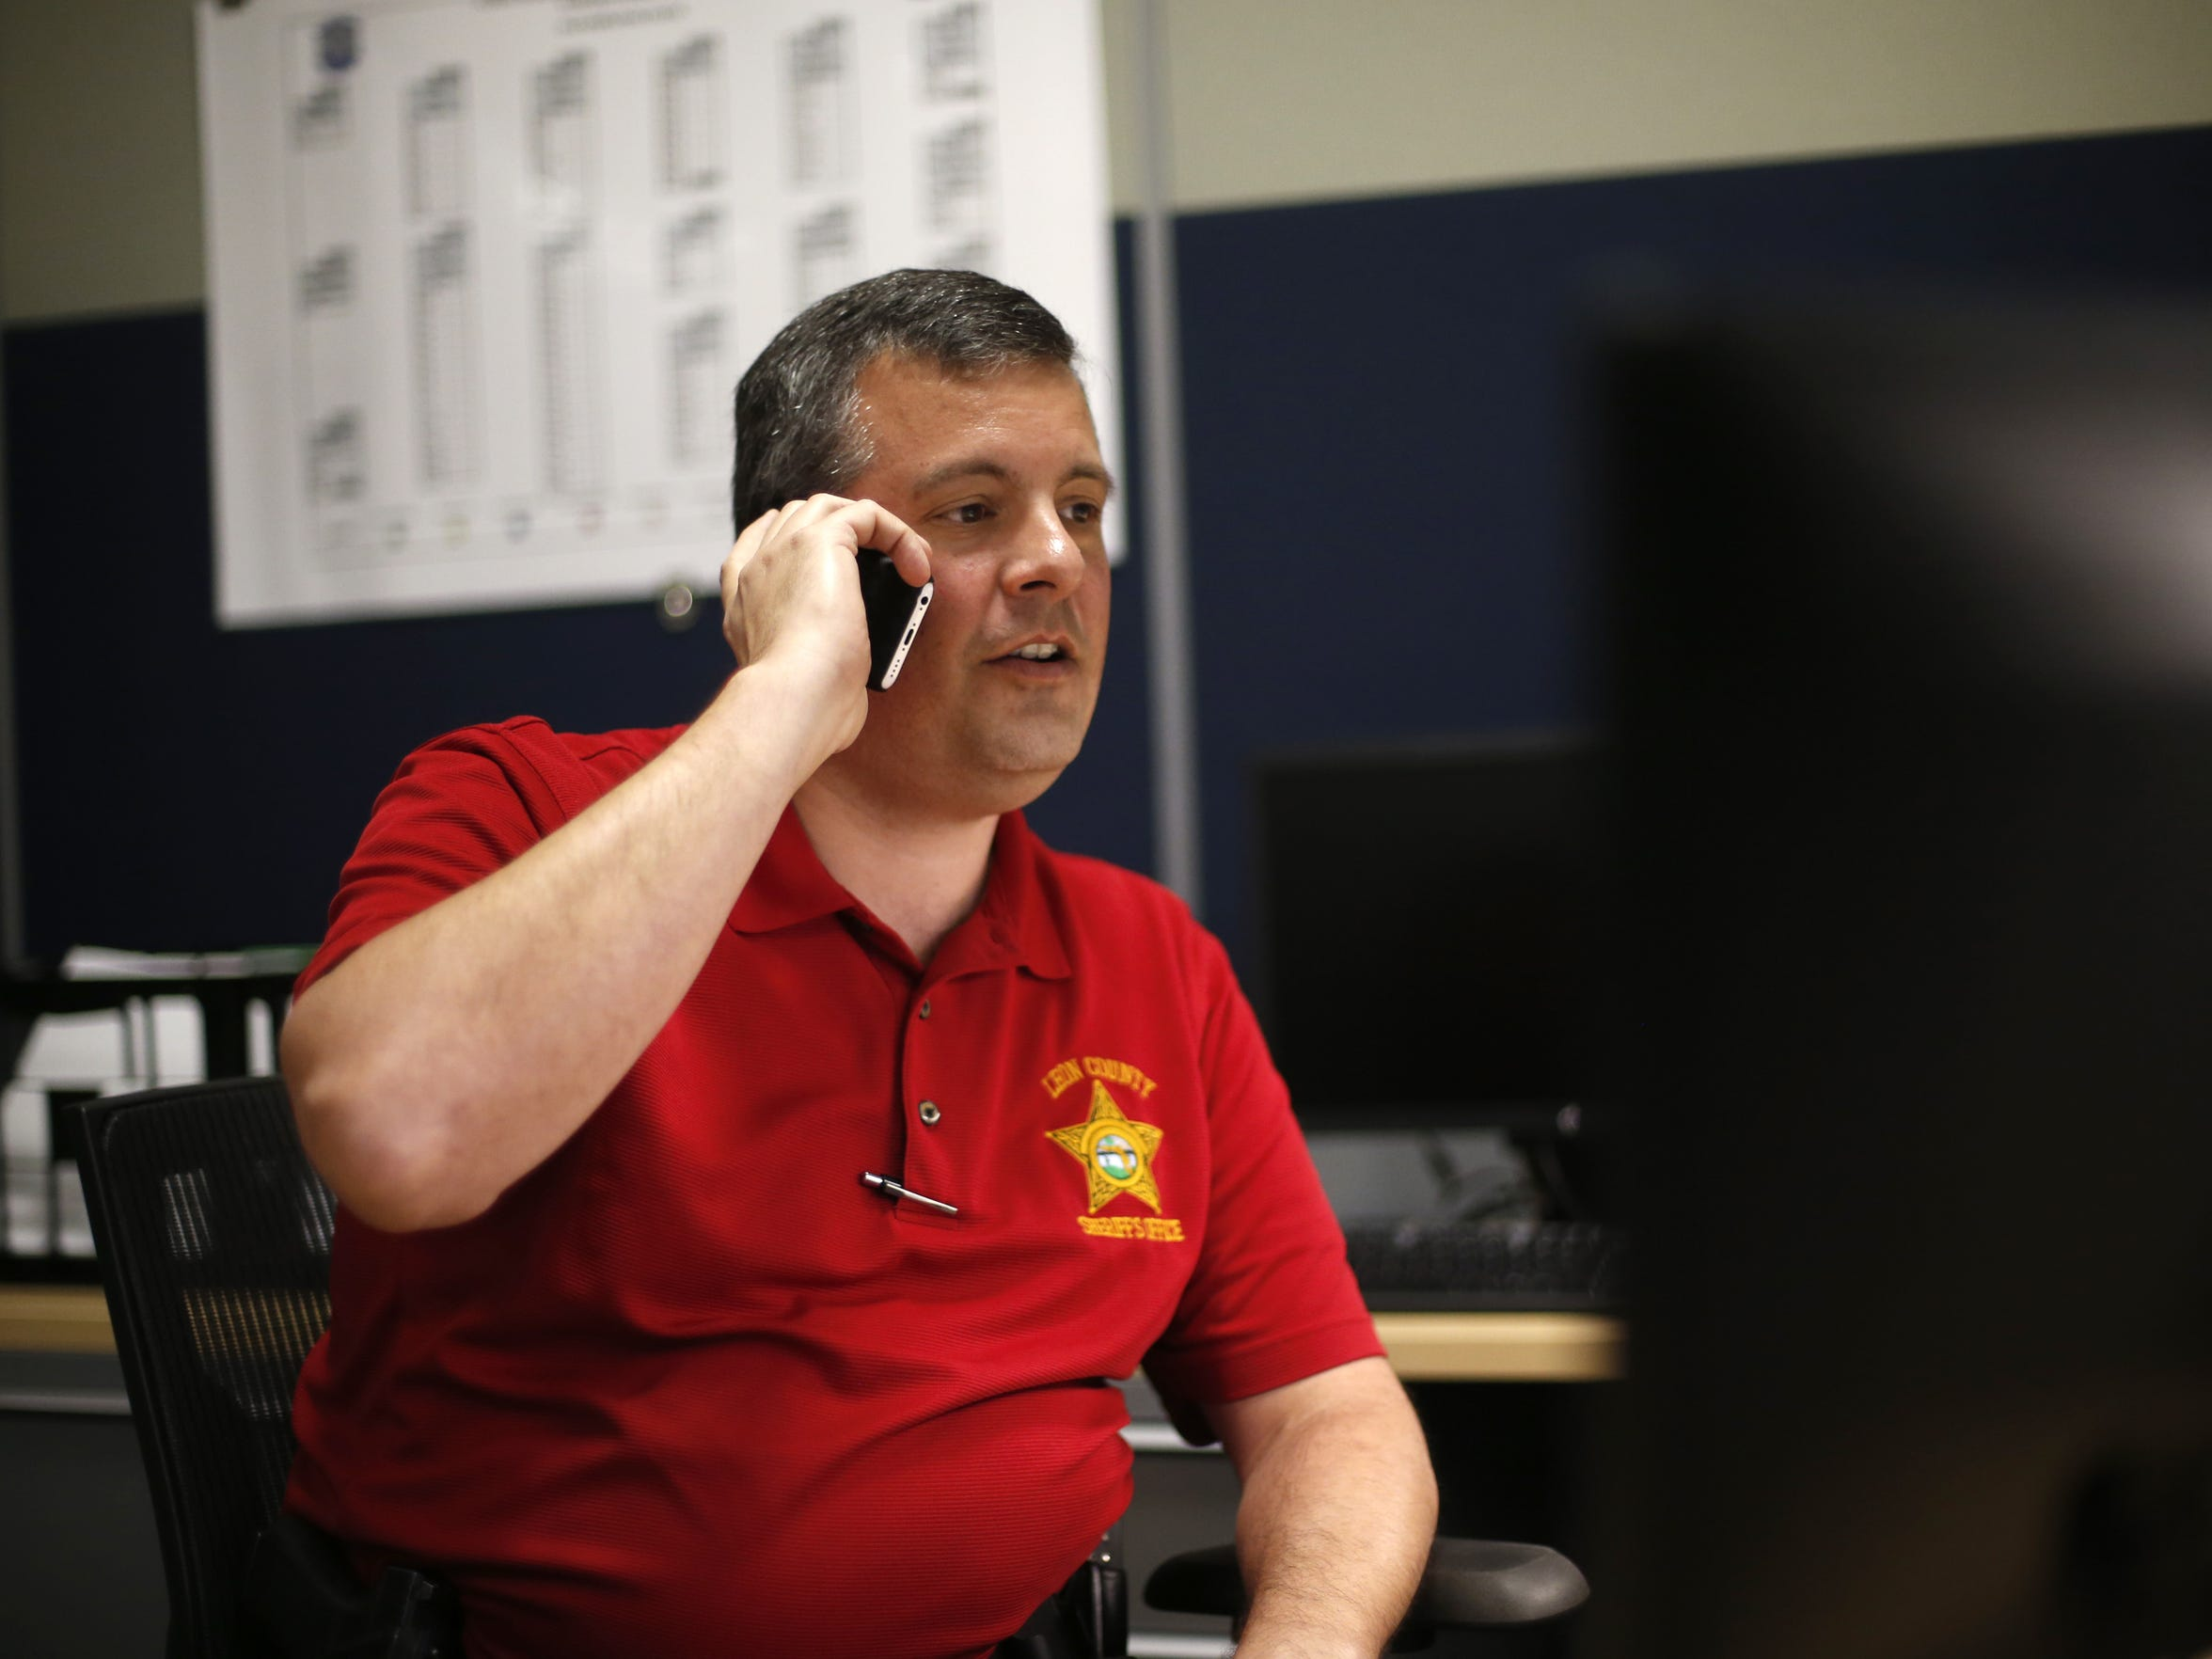 Leon County Lieutenant Tony Drzewiecki answers a call